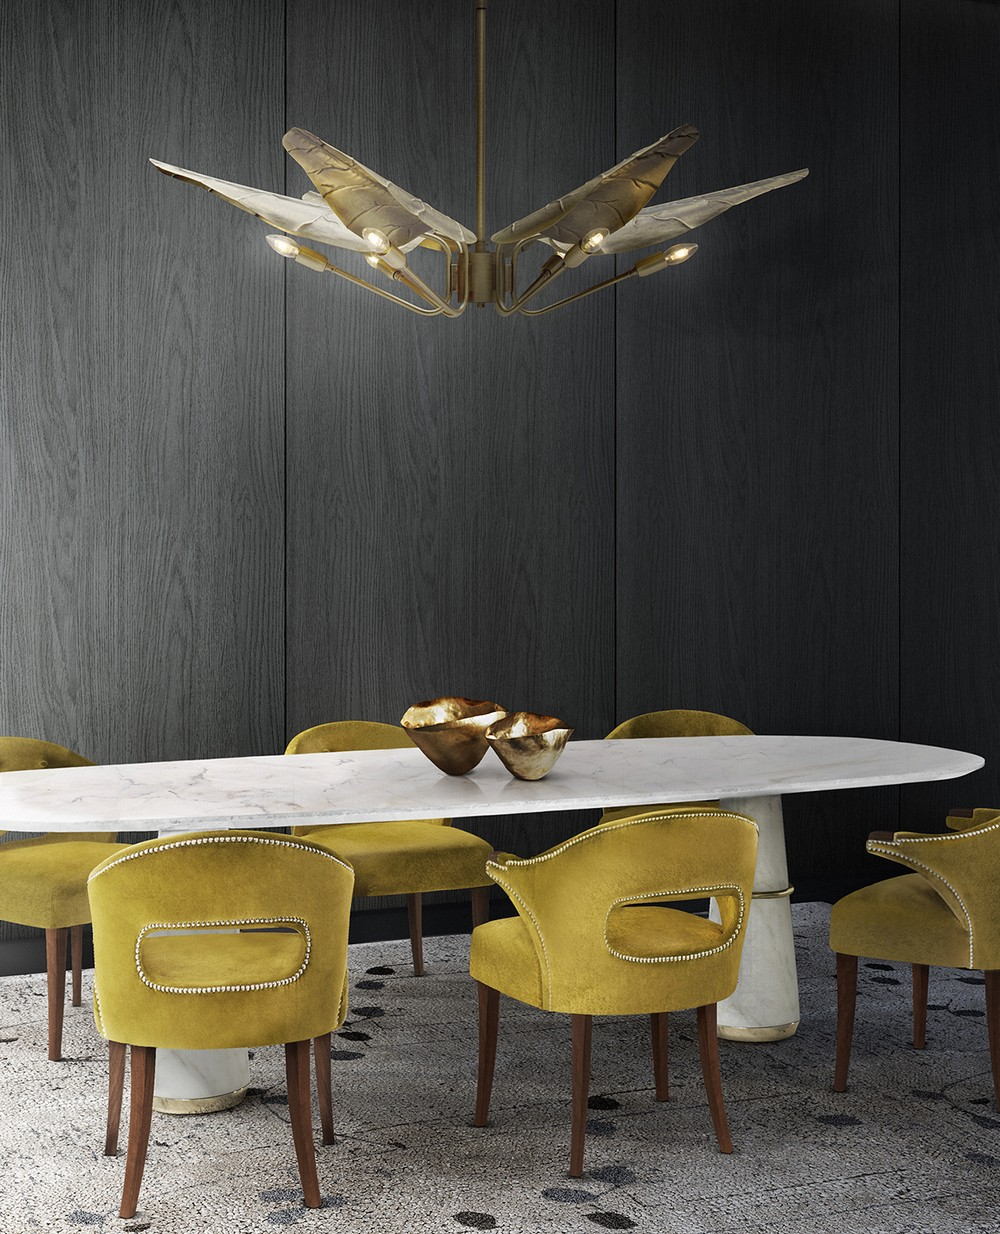 7 Dining Room Chandeliers That Will Spark A Luxury Atmosphere dining room chandeliers 7 Dining Room Chandeliers That Will Spark A Luxury Atmosphere 137 agra dining 2 calla suspension New piecesmini